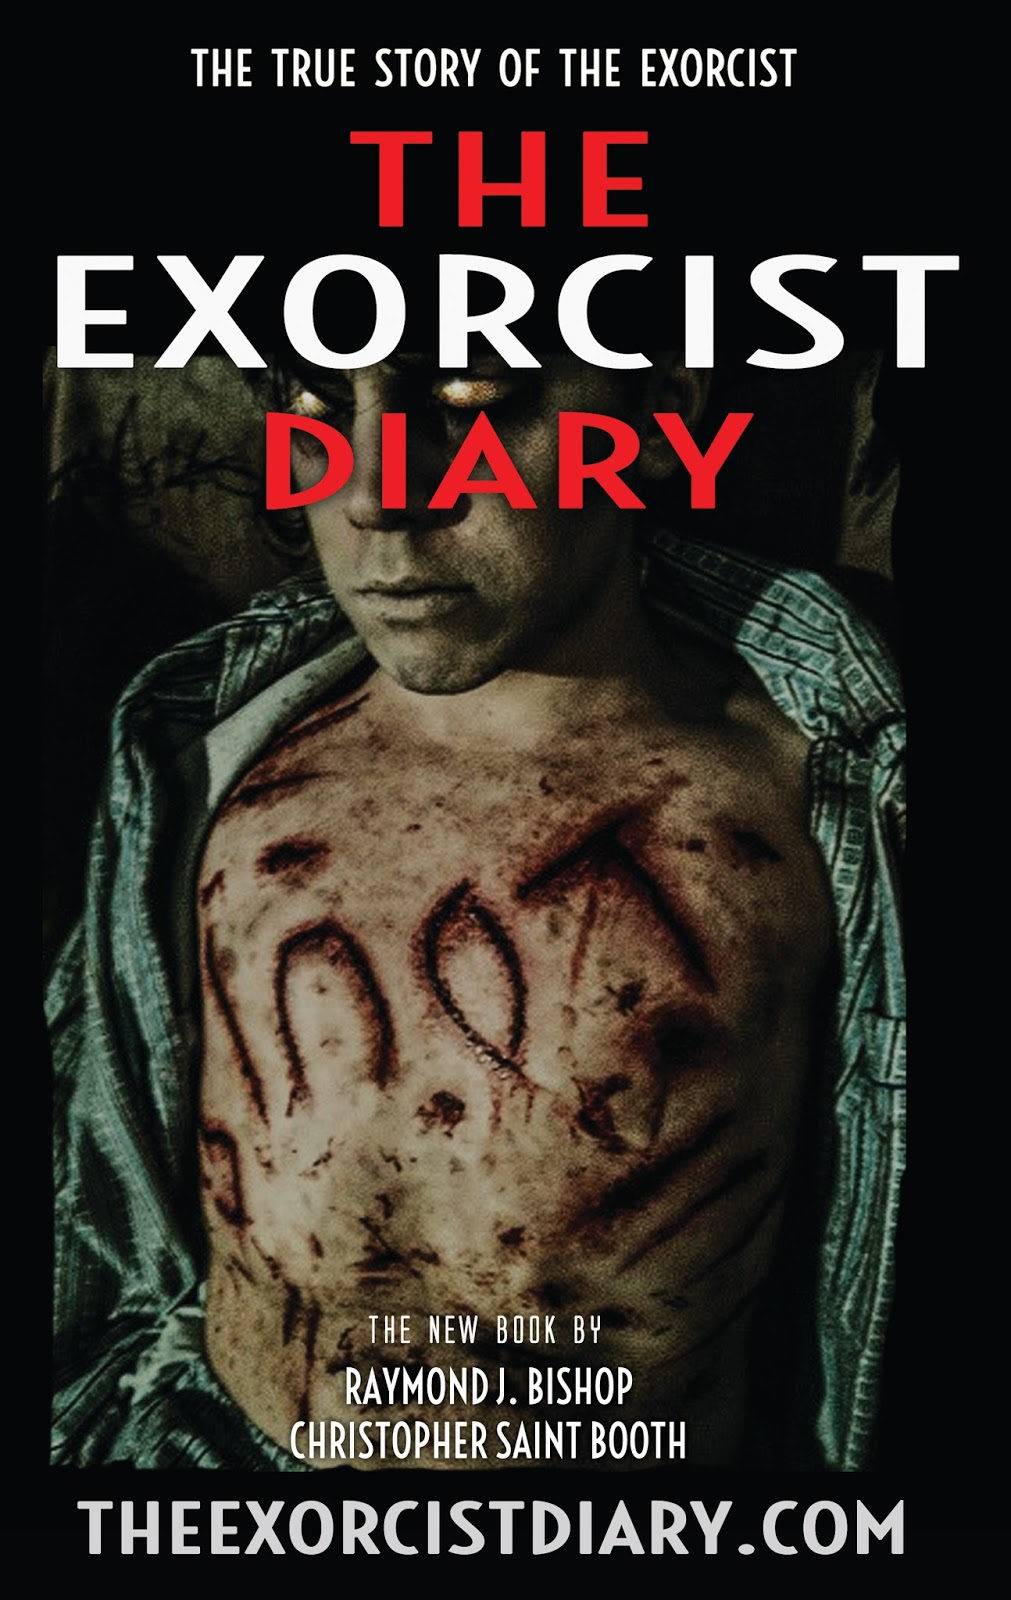 True Story Magazine Subscription: SPOOKED TELEVISION RELEASING: THE EXORCIST DIARY